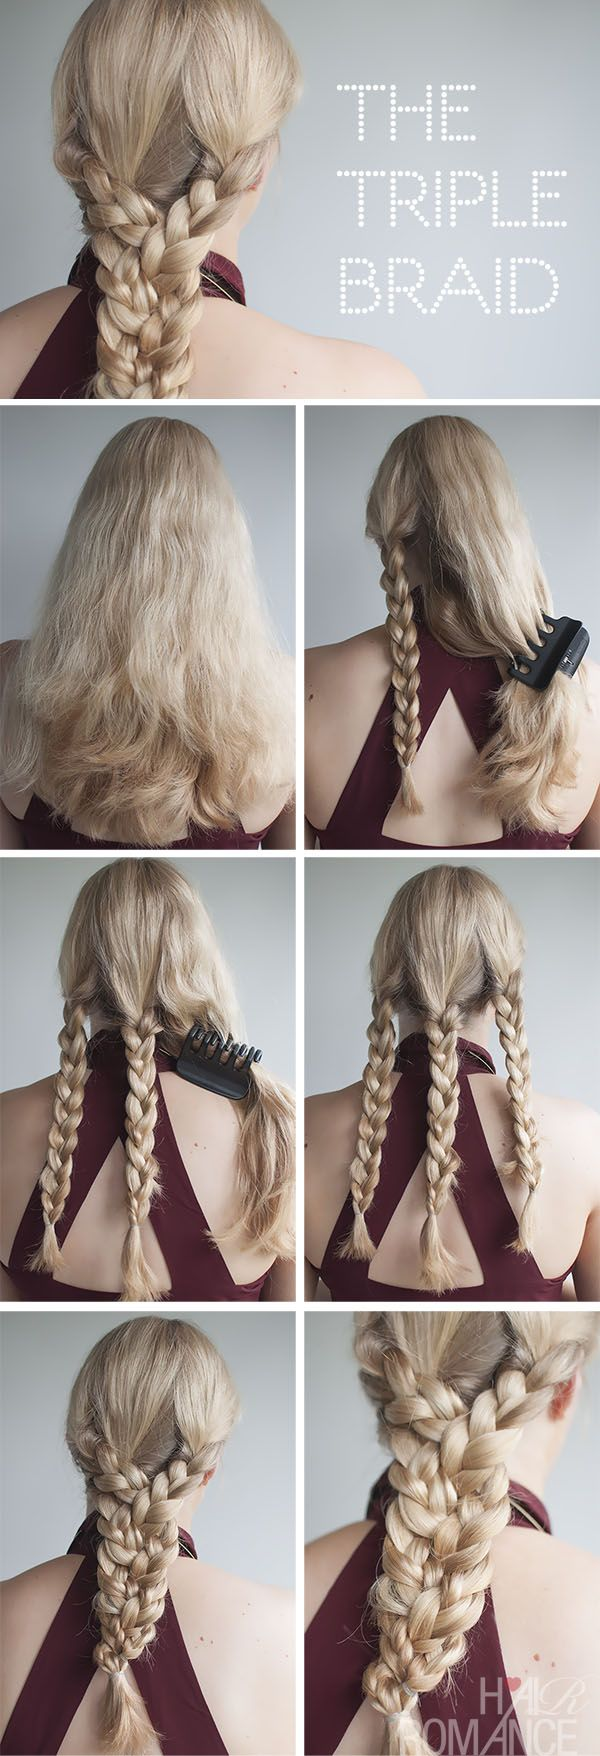 Hair Romance - triple braid tutorial @Plainview Vintage Michelle, for some reason this instantly made me think of you! :)